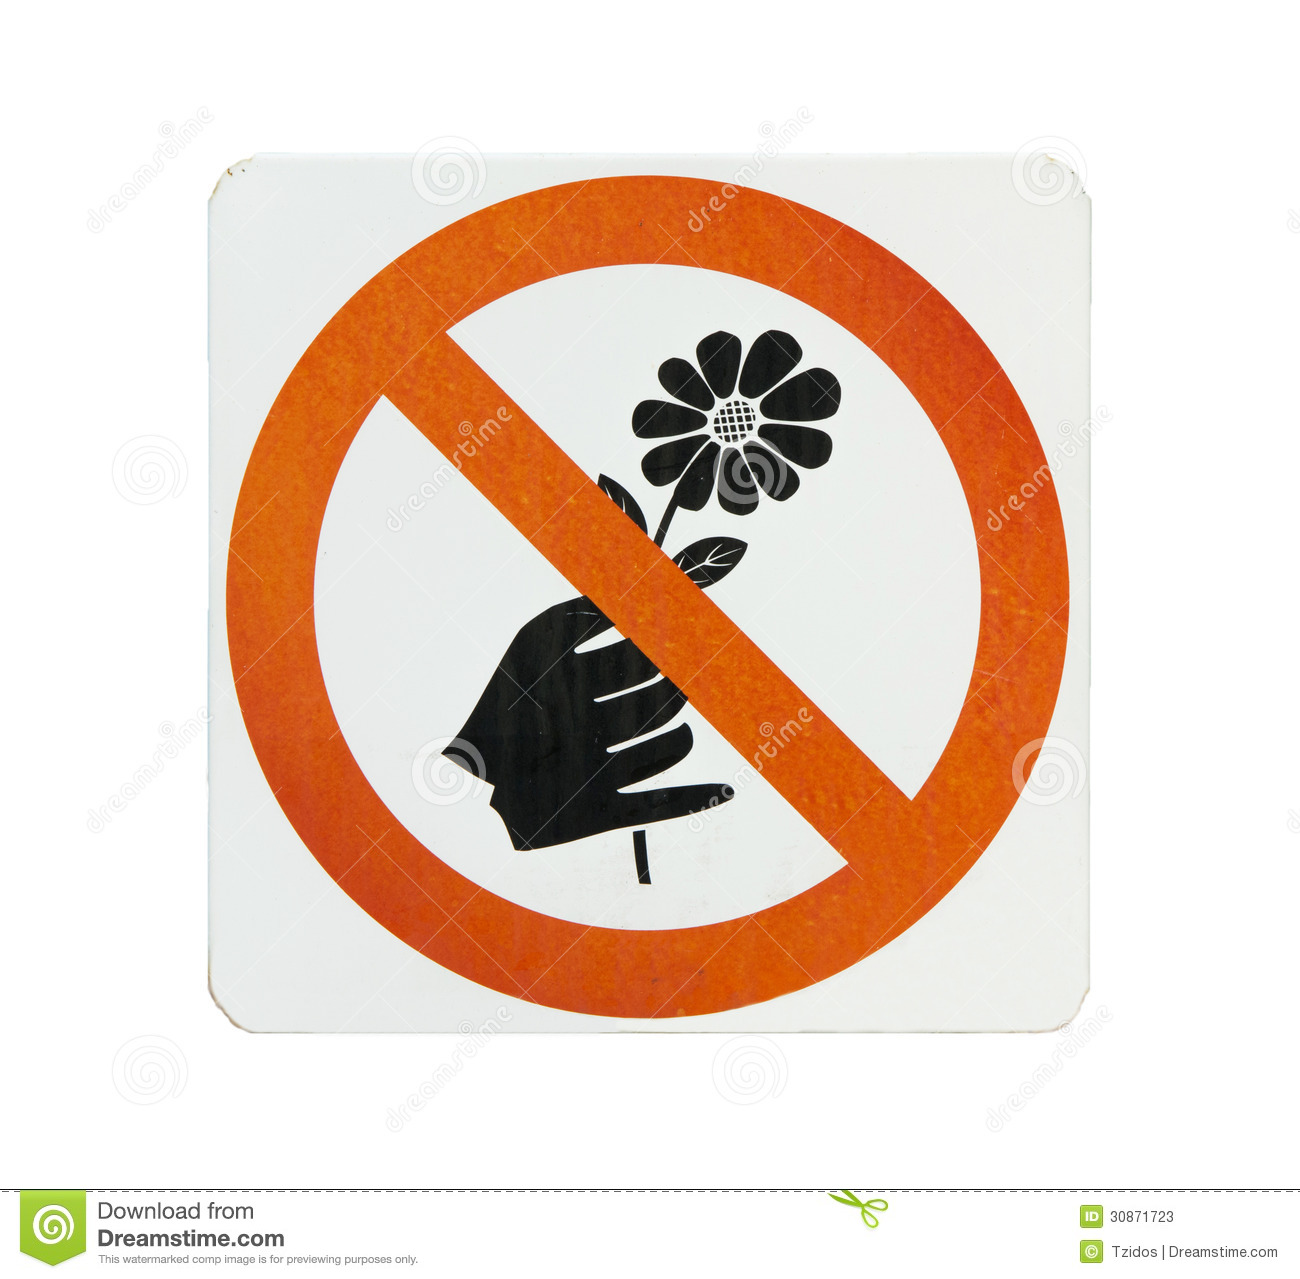 Do not pick flower sign orange cycle color on white background stock